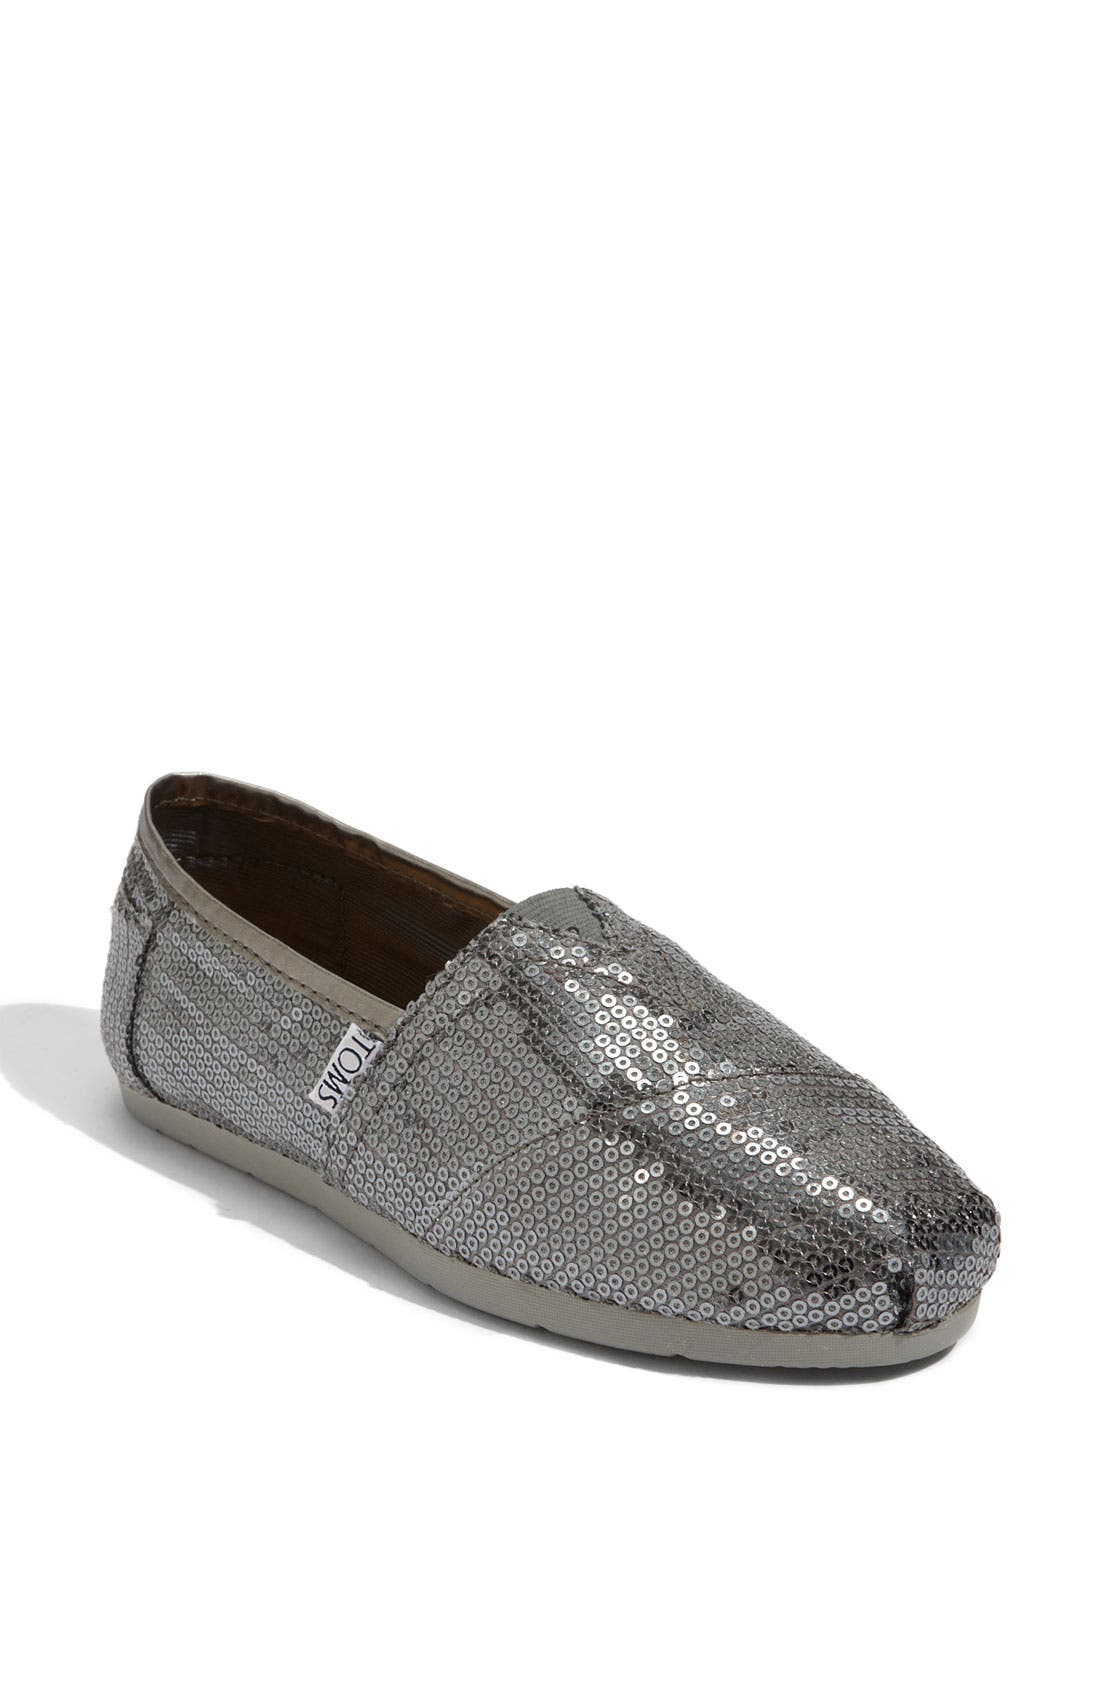 Main Image - TOMS 'Classic - Sequins' Slip-On (Women) (Nordstrom Exclusive)